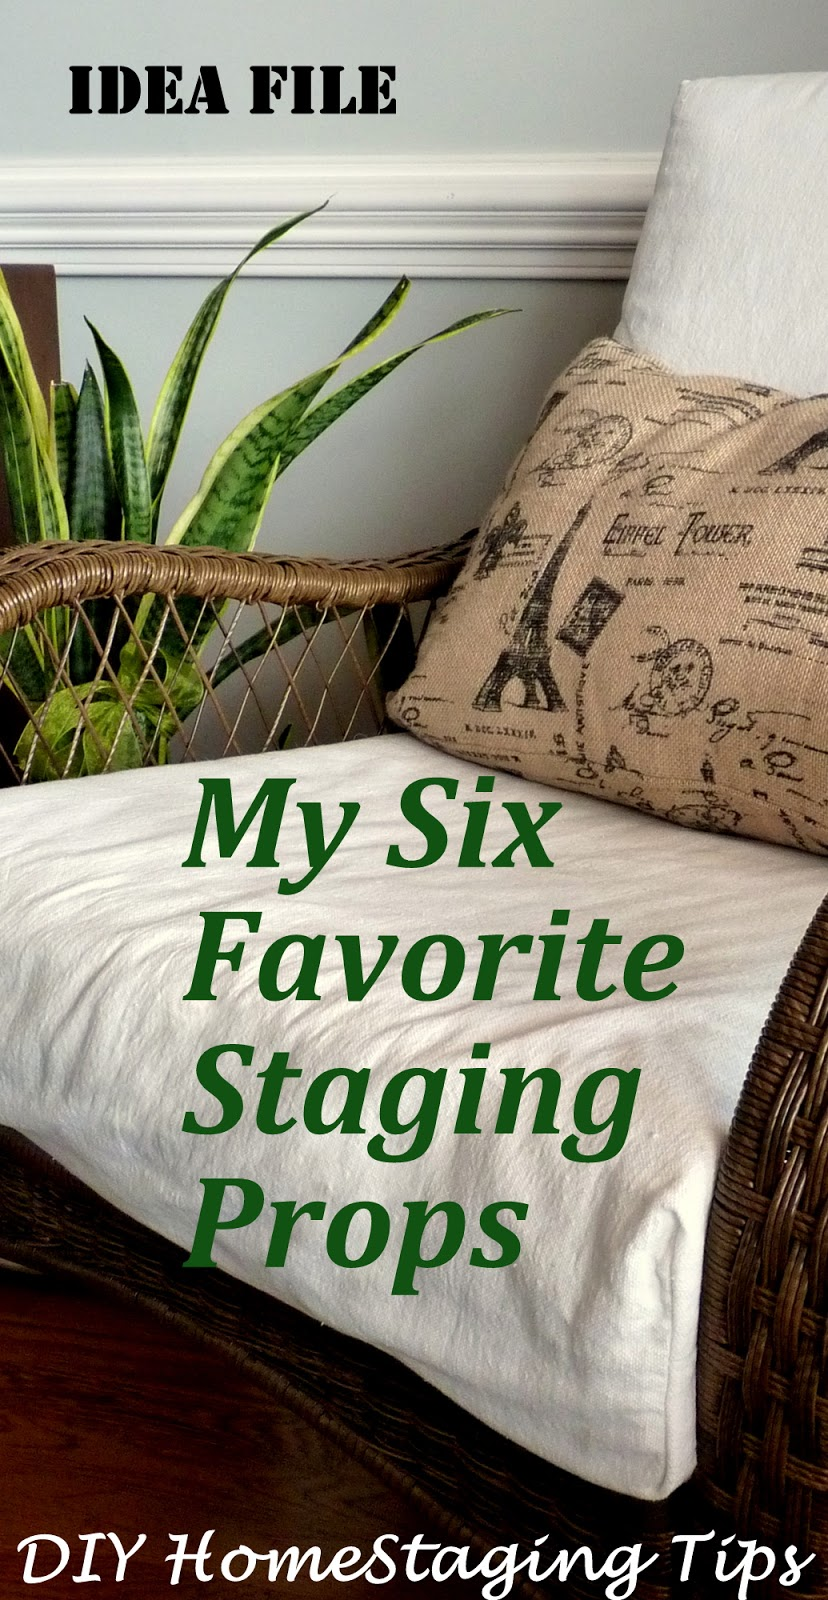 Model home staging props